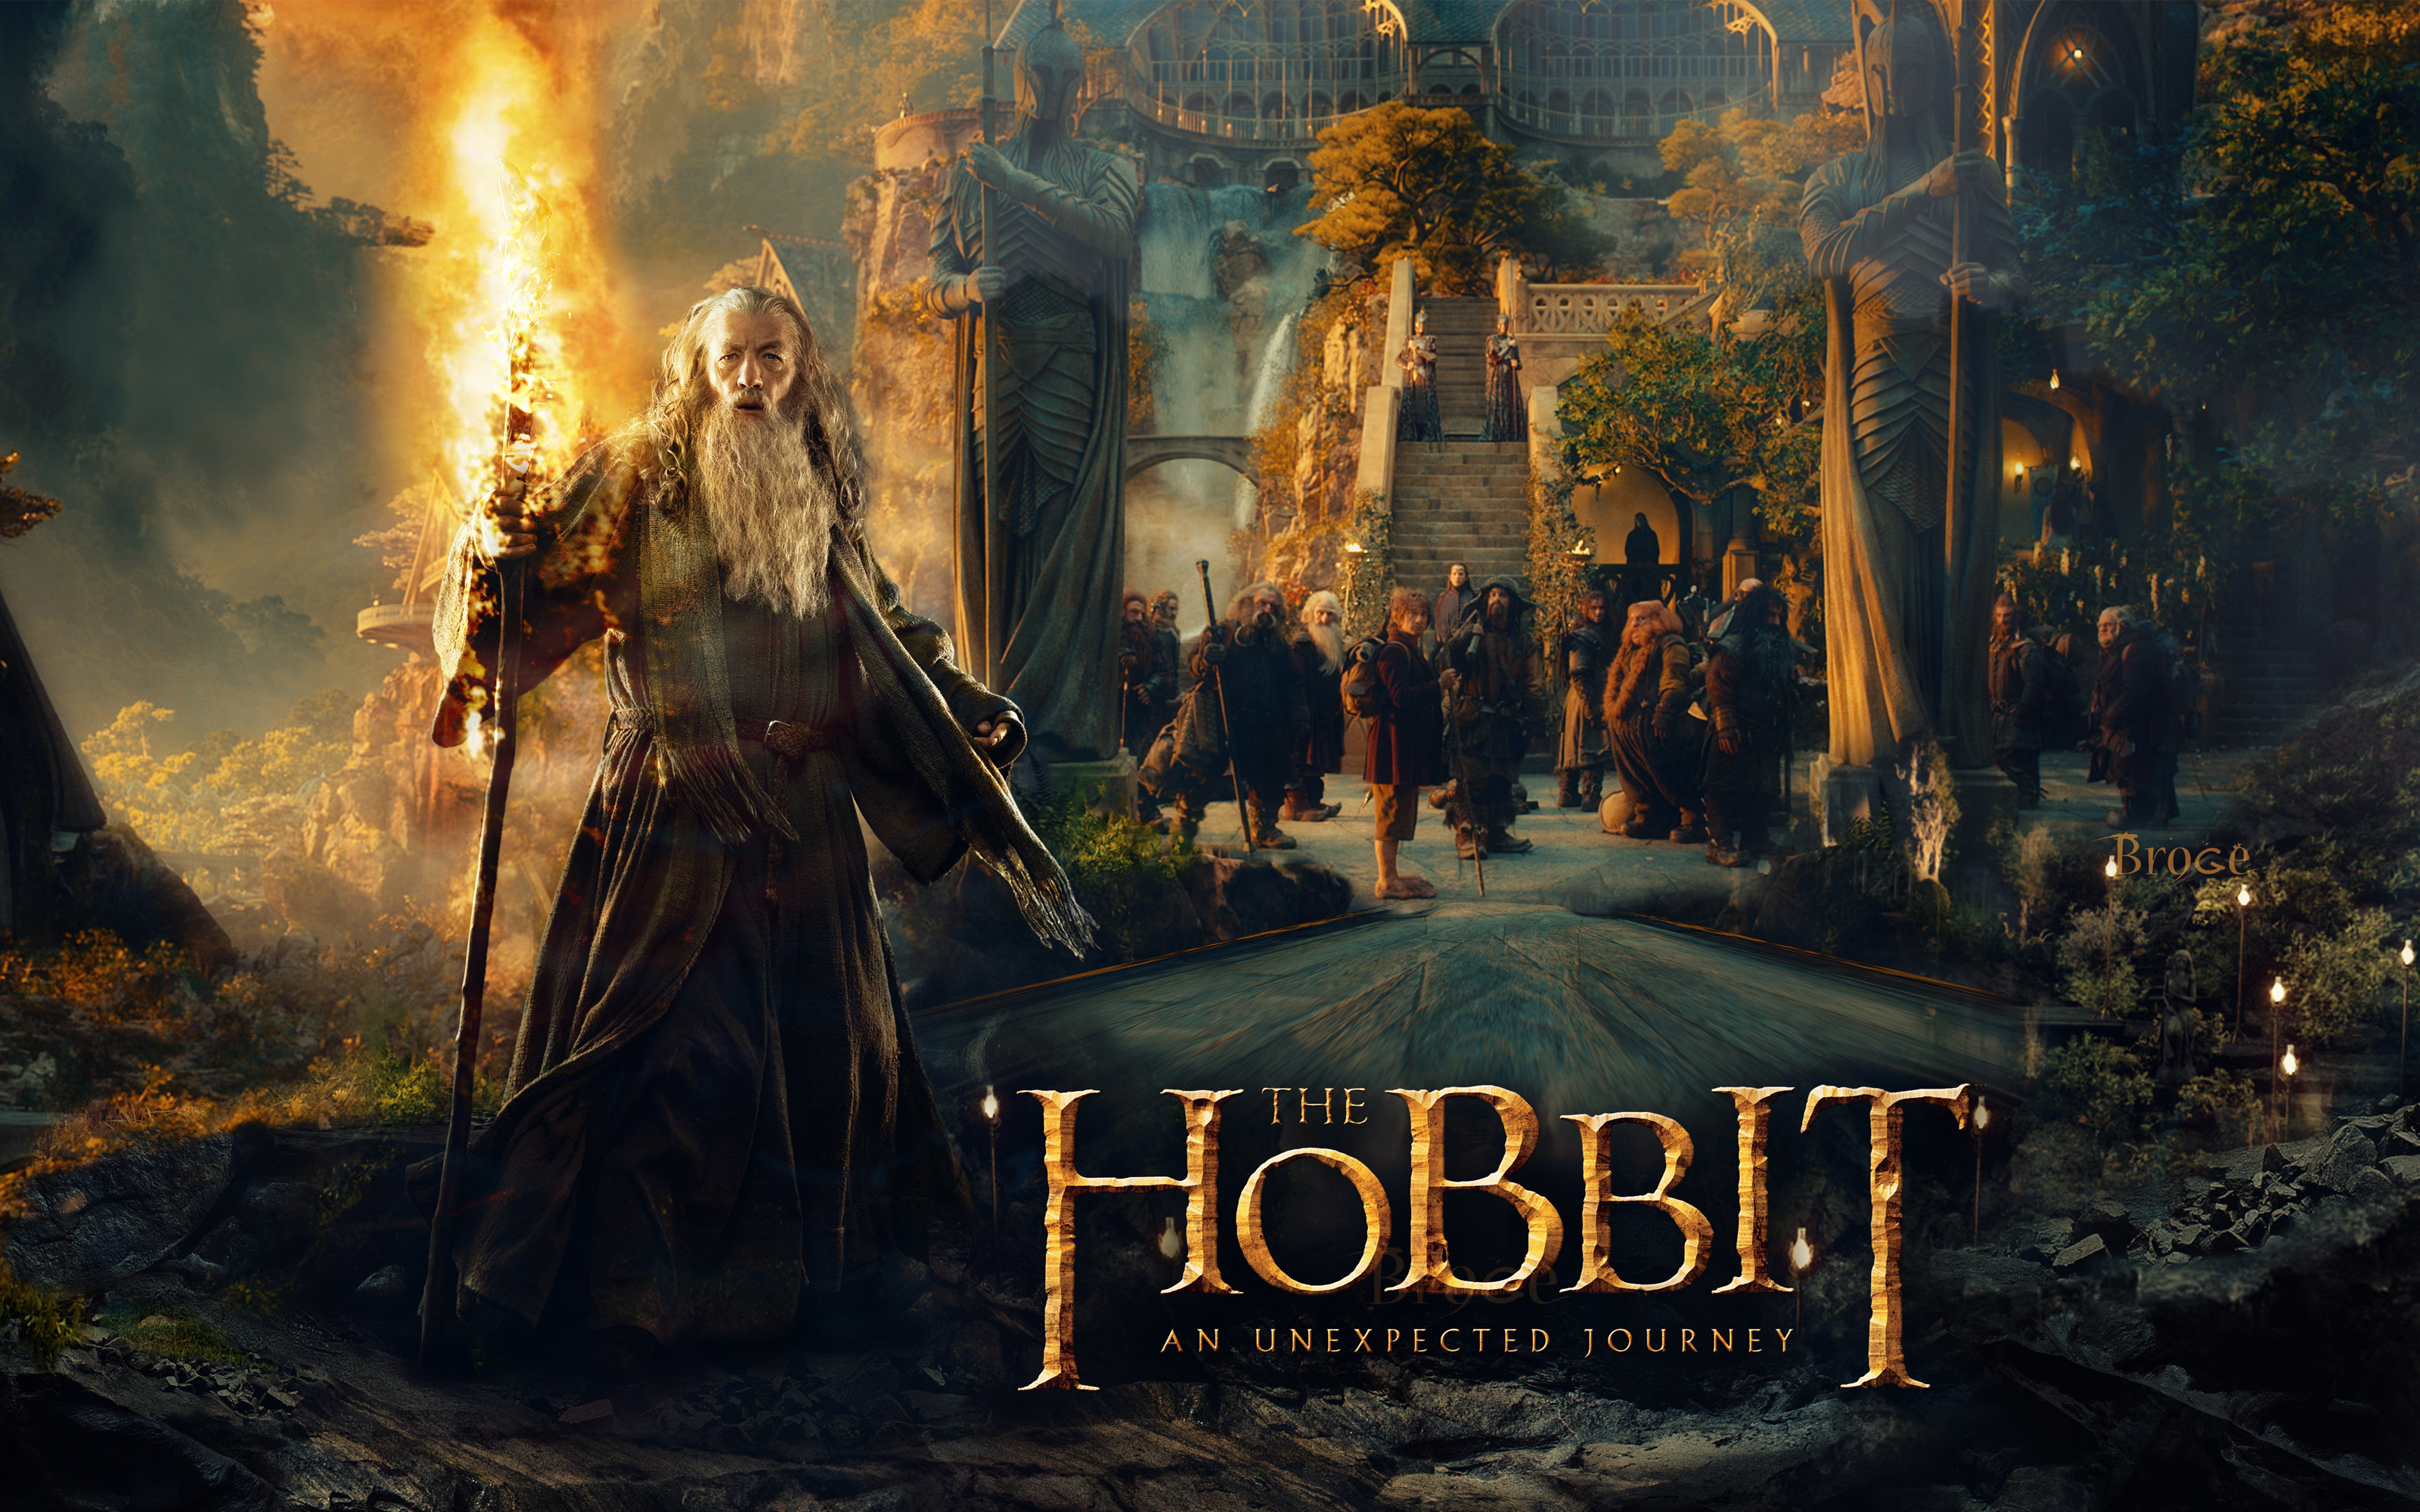 the hobbit an unexpected journey   The Hobbit 3200x2000